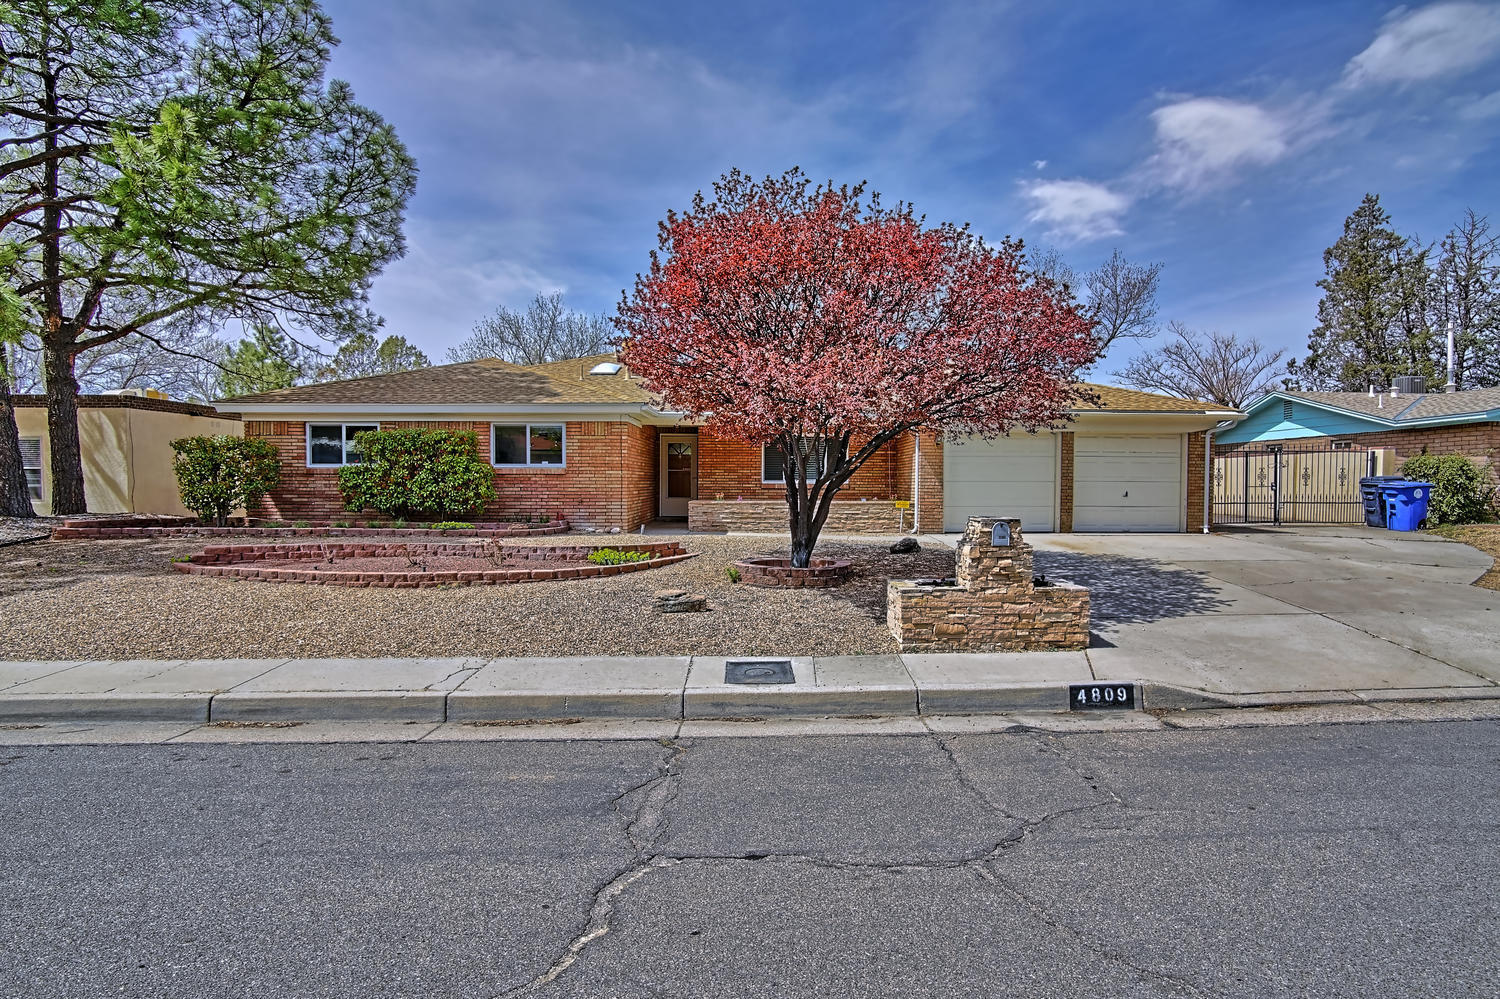 4809 PHYLLIS Street NE Property Photo - Albuquerque, NM real estate listing